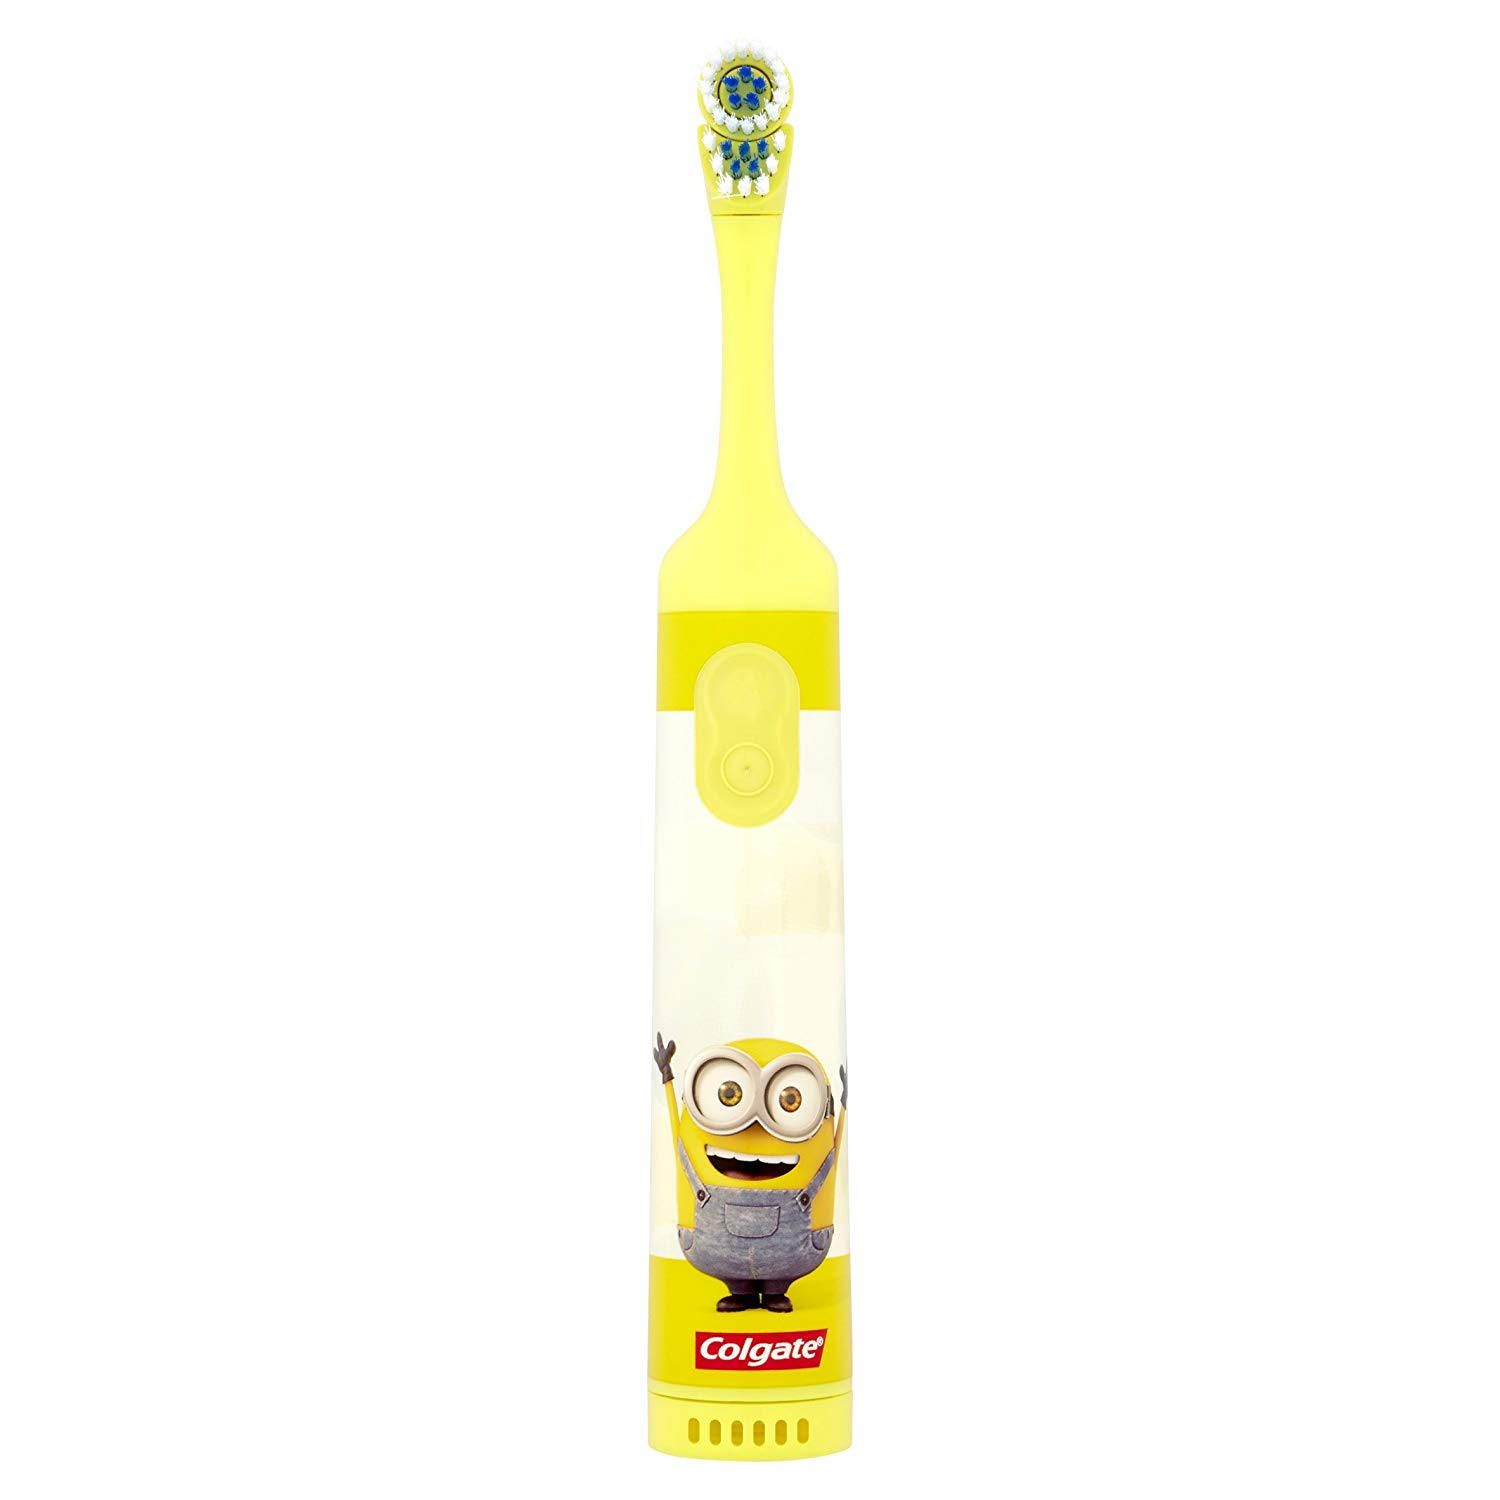 Colgate Minions Talking Extra Soft Battery Toothbrush